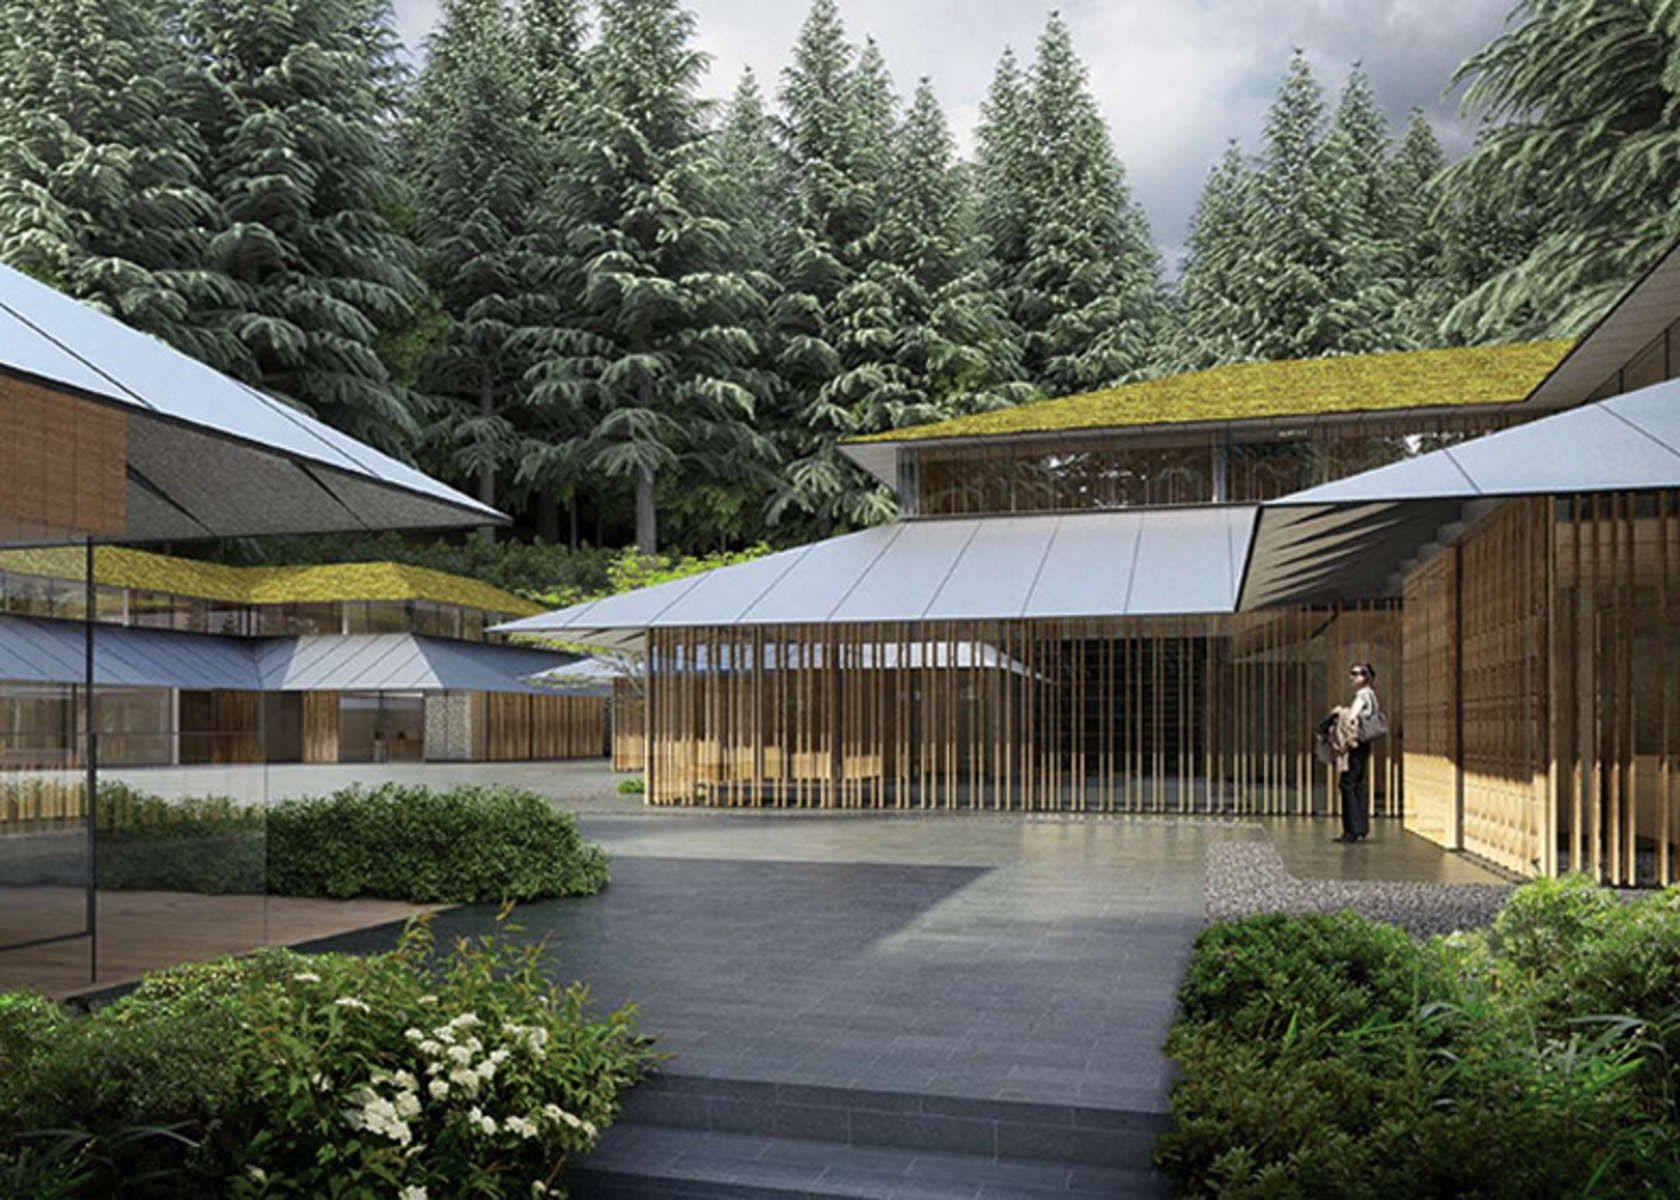 A Series Of Low Pitch Roofs And Overhanging Eaves Possesses Hints Of Frank Lloyd Wright Portland Japanese Garden Japanese Architecture Kengo Kuma